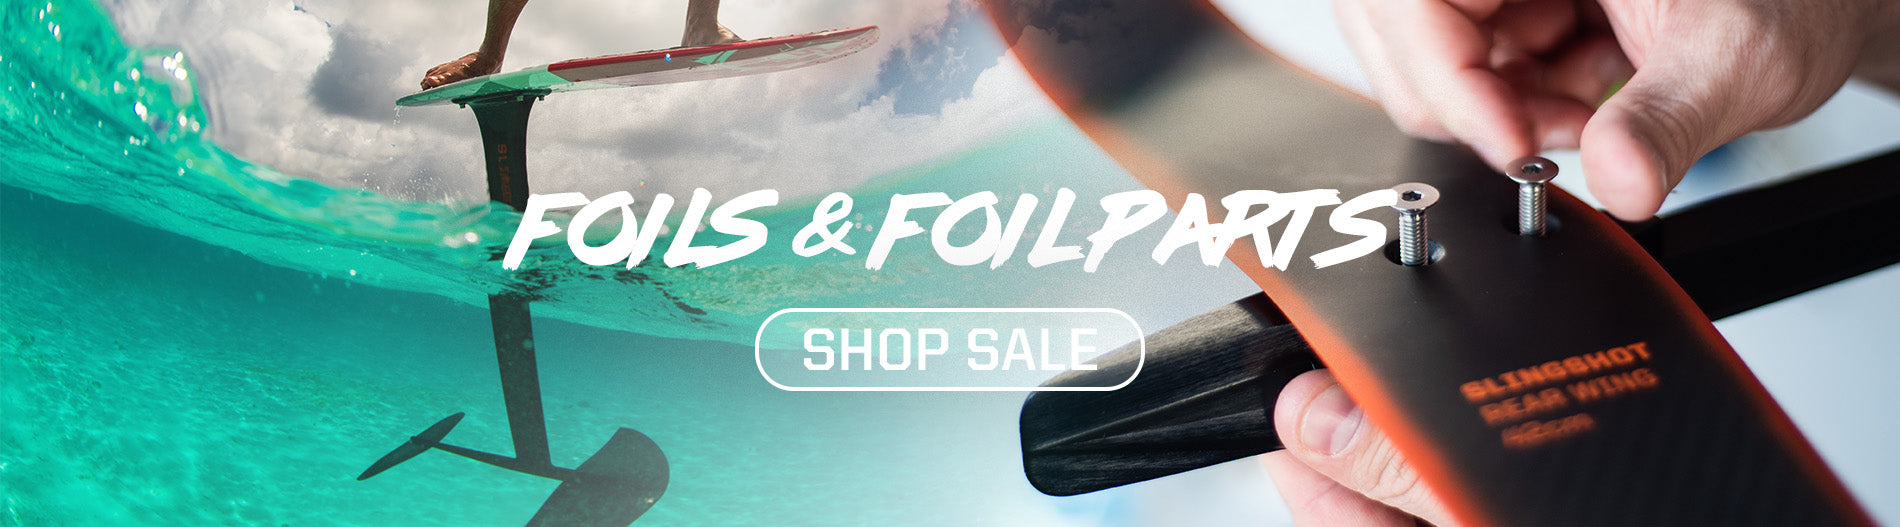 Slingshot foils and foil parts october 2019 clearance sale